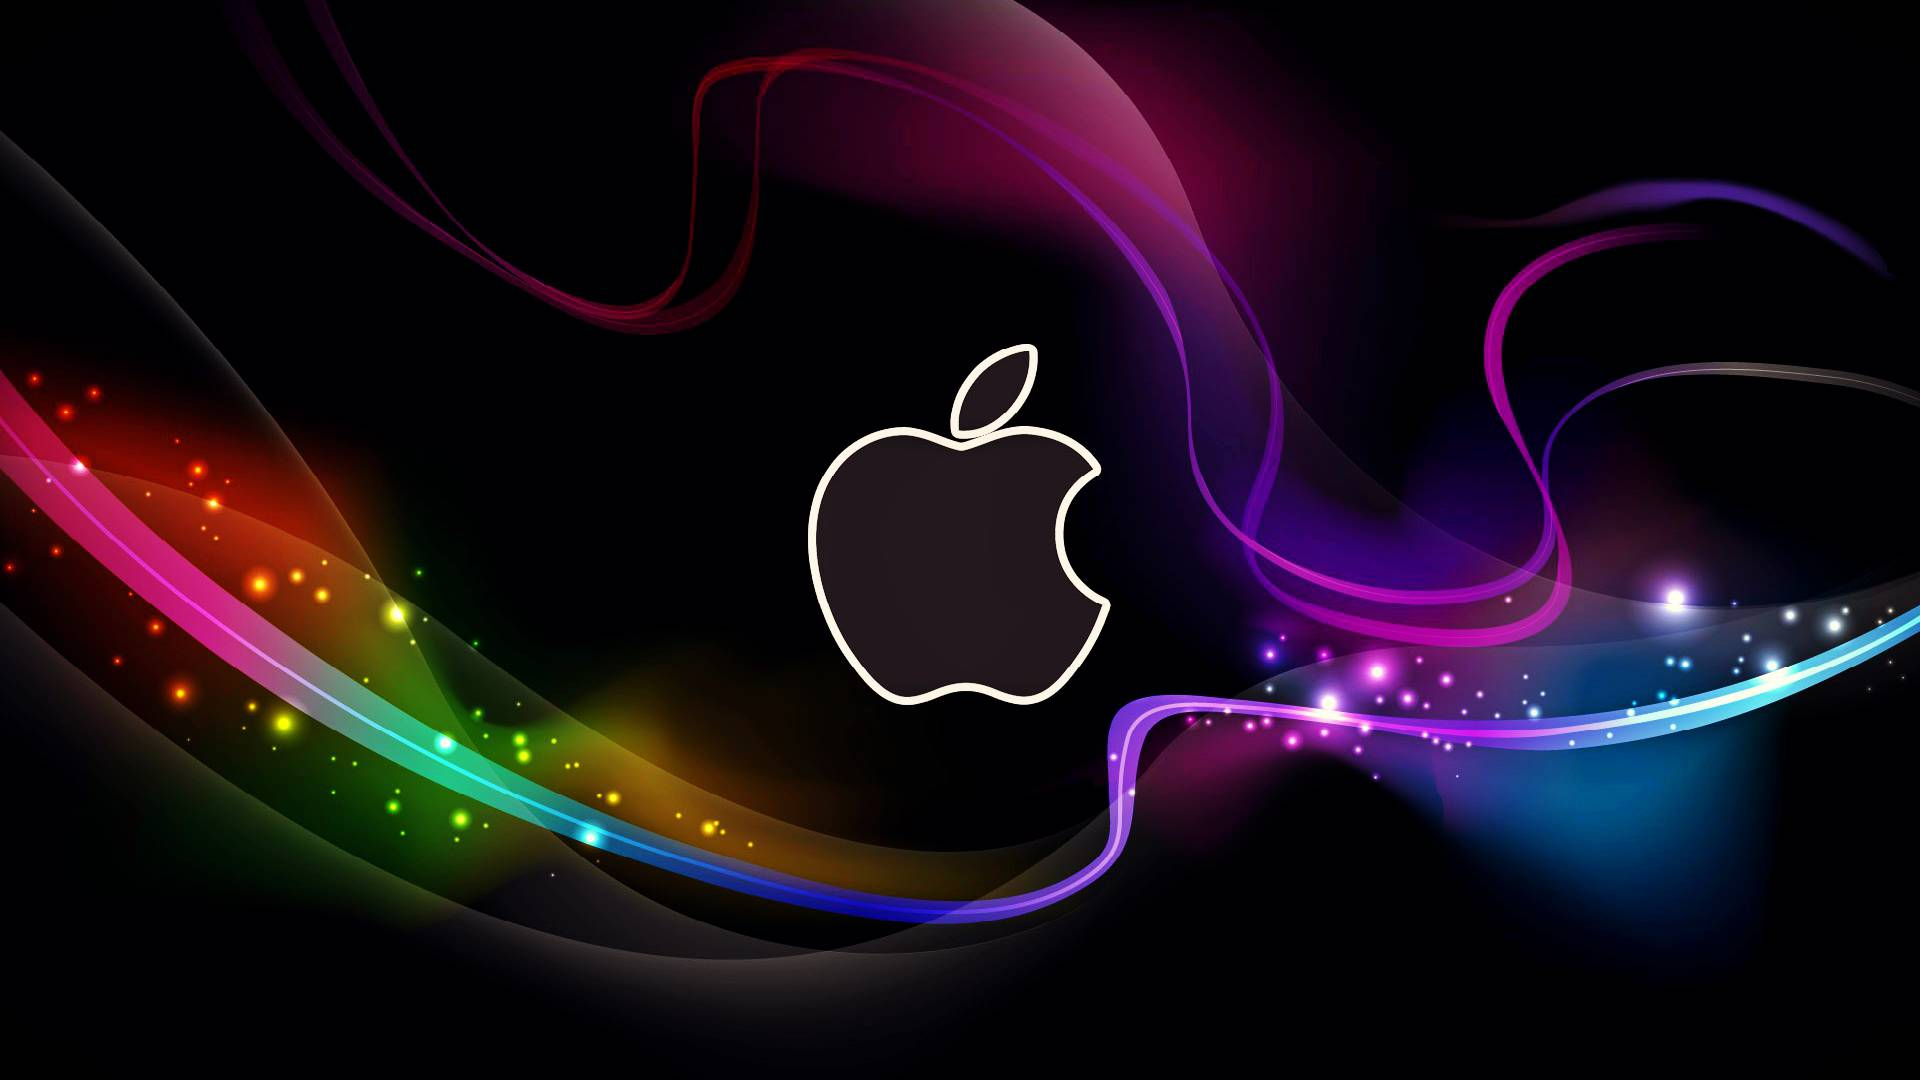 cool apple backgrounds #1